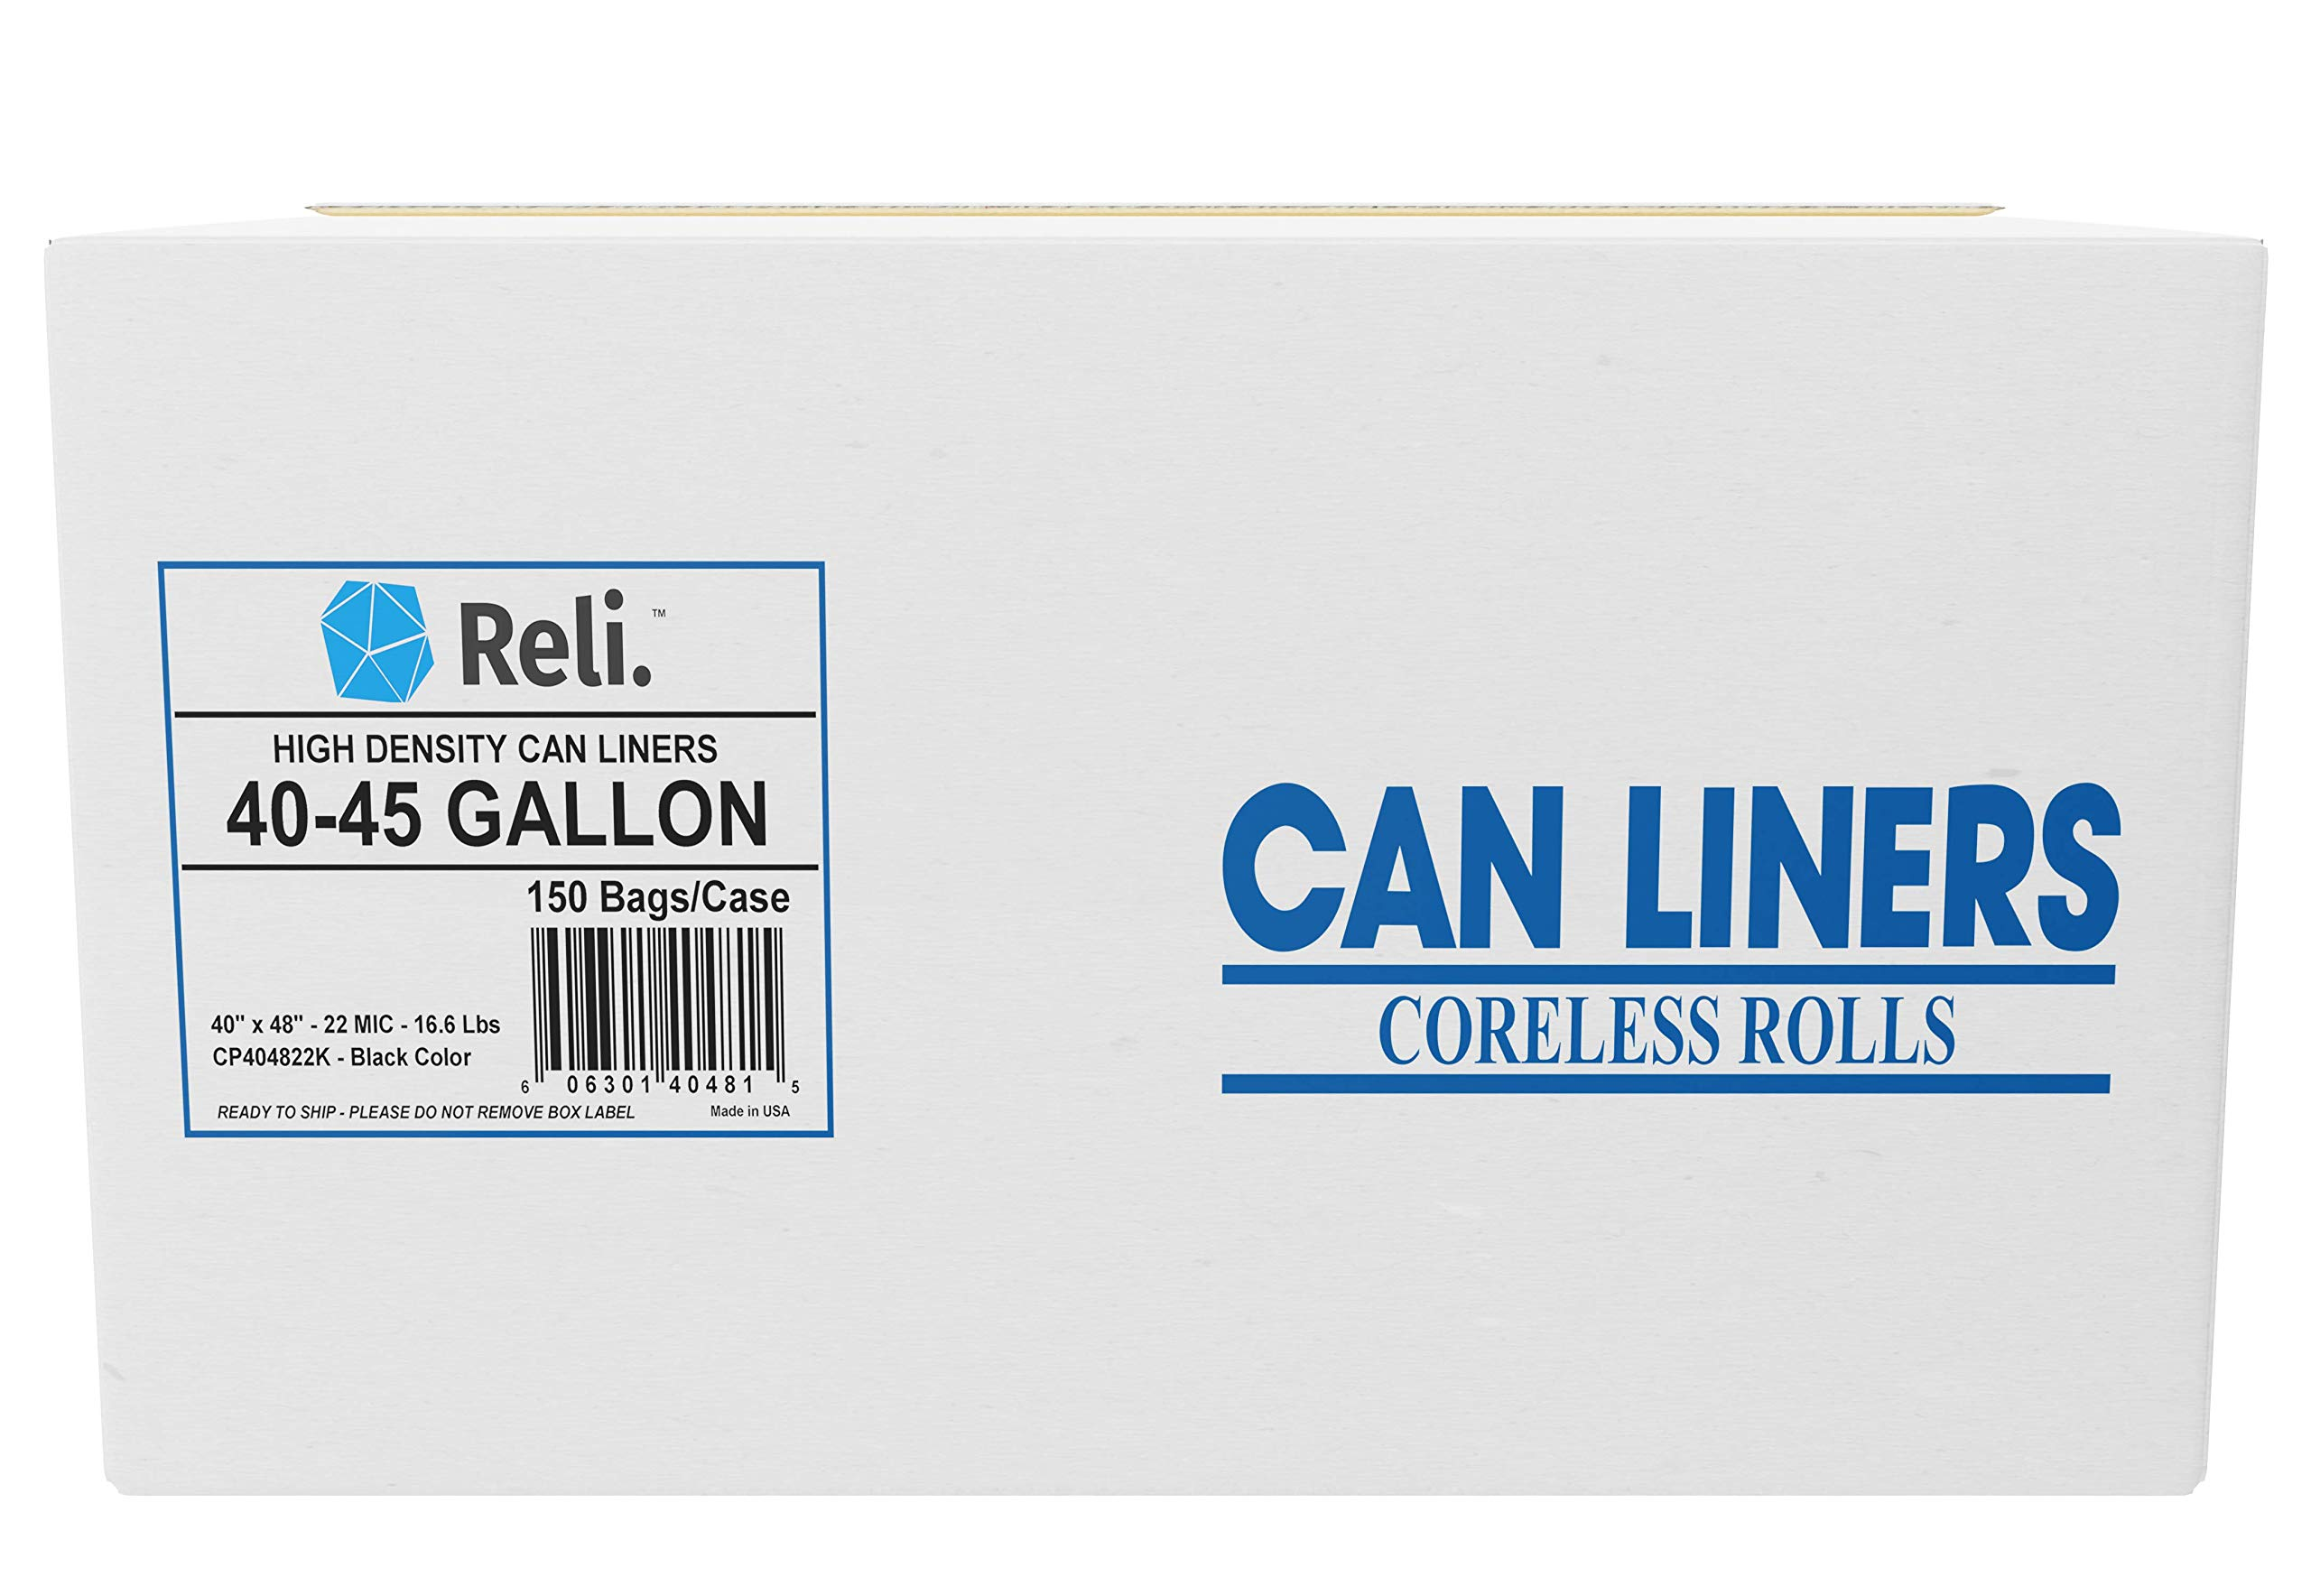 Reli. Premium Thickness Trash Bags, 40-45 Gallon (150 Count) (Black) - Easy Grab Rolls - Can Liners, Garbage Bags with 40 Gallon (40 Gal) to 45 Gallon (45 Gal) Capacity by Reli. (Image #1)